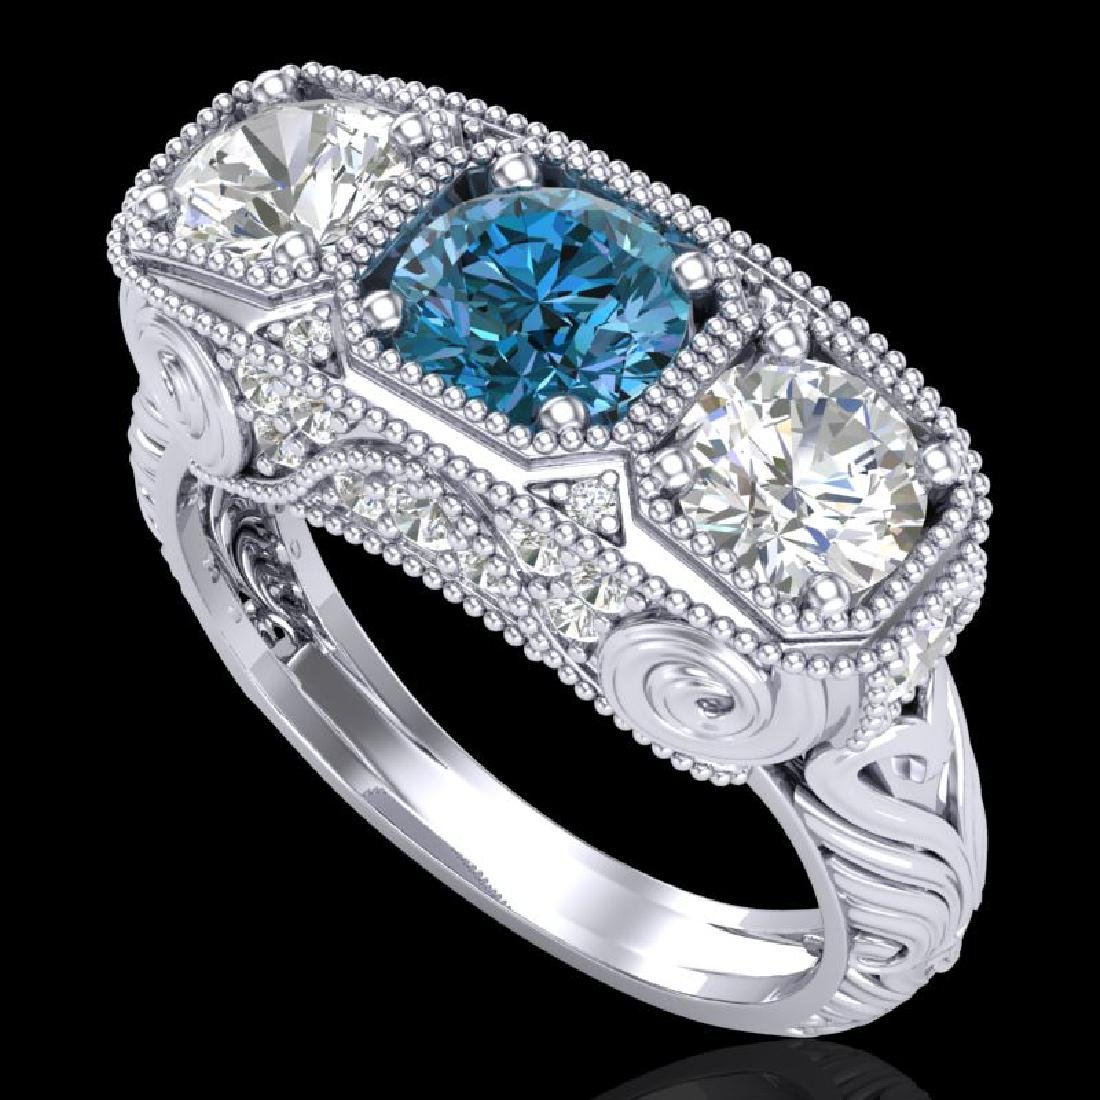 2.51 CTW Intense Blue Diamond Solitaire Art Deco 3